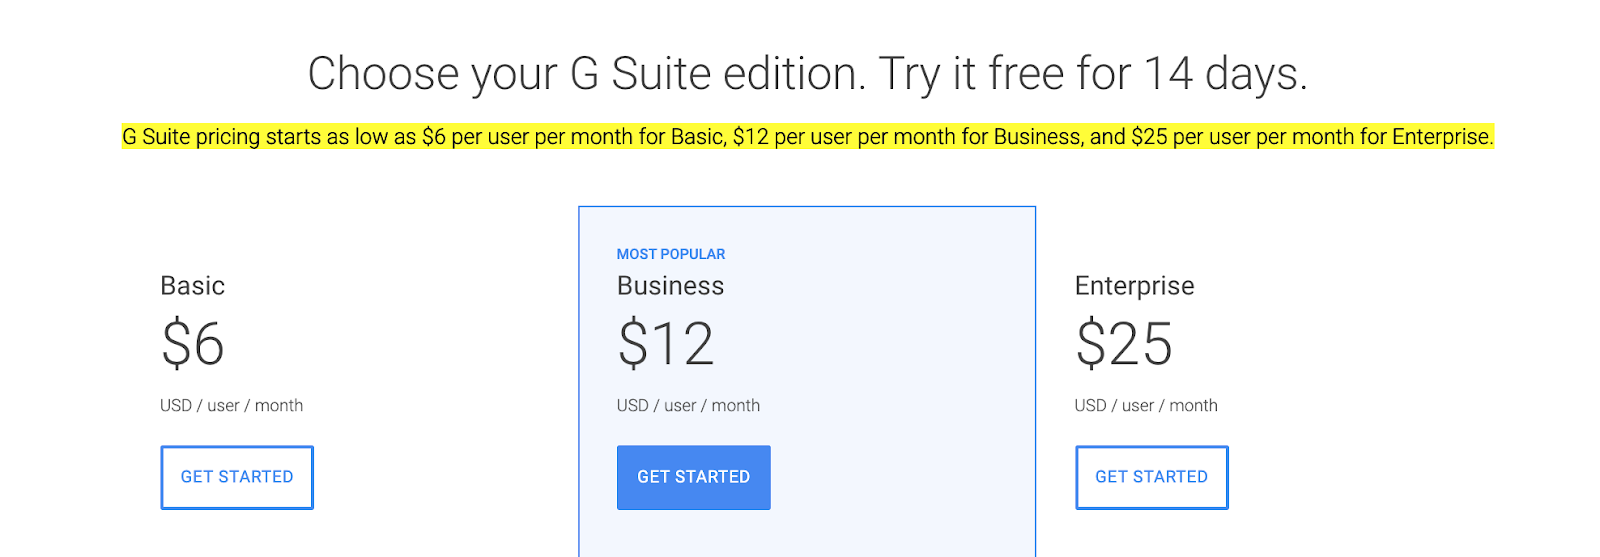 how much does g suite cost